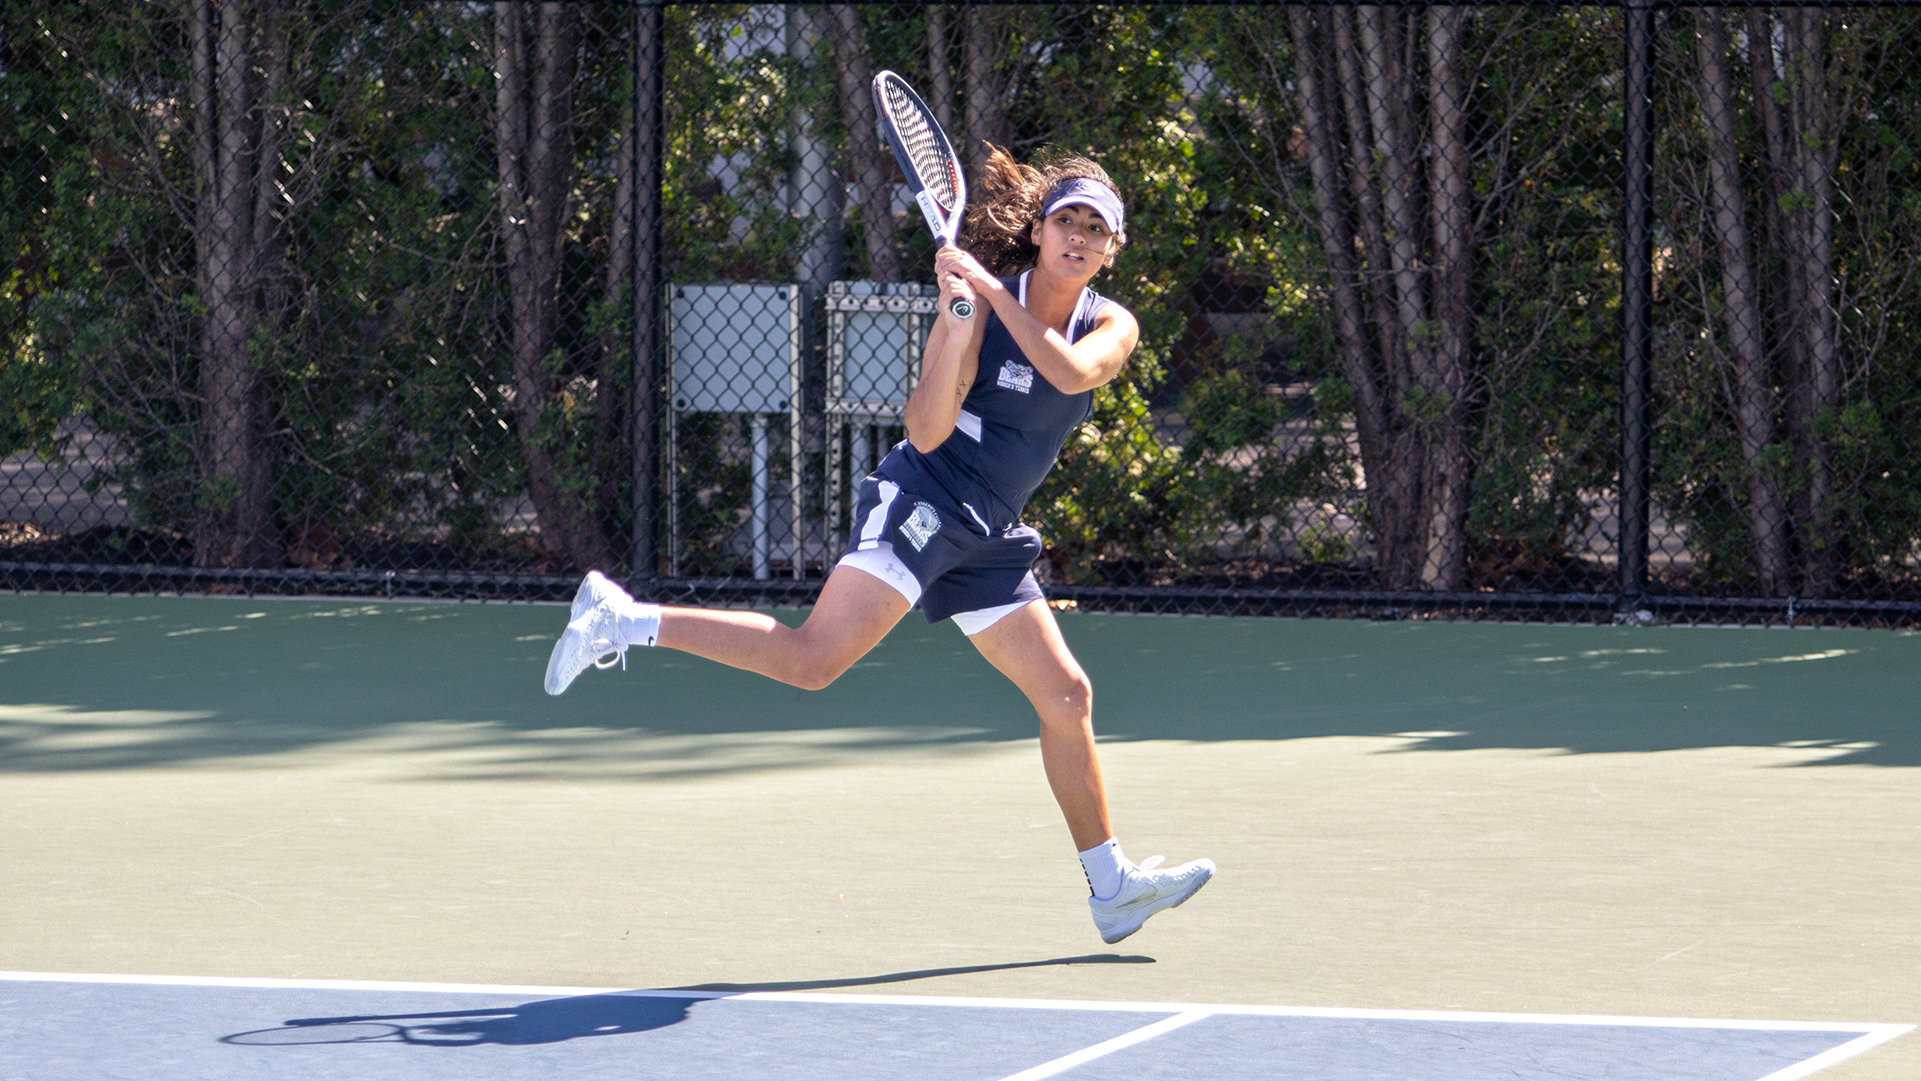 Women's Tennis Bypassed by FDU-Florham